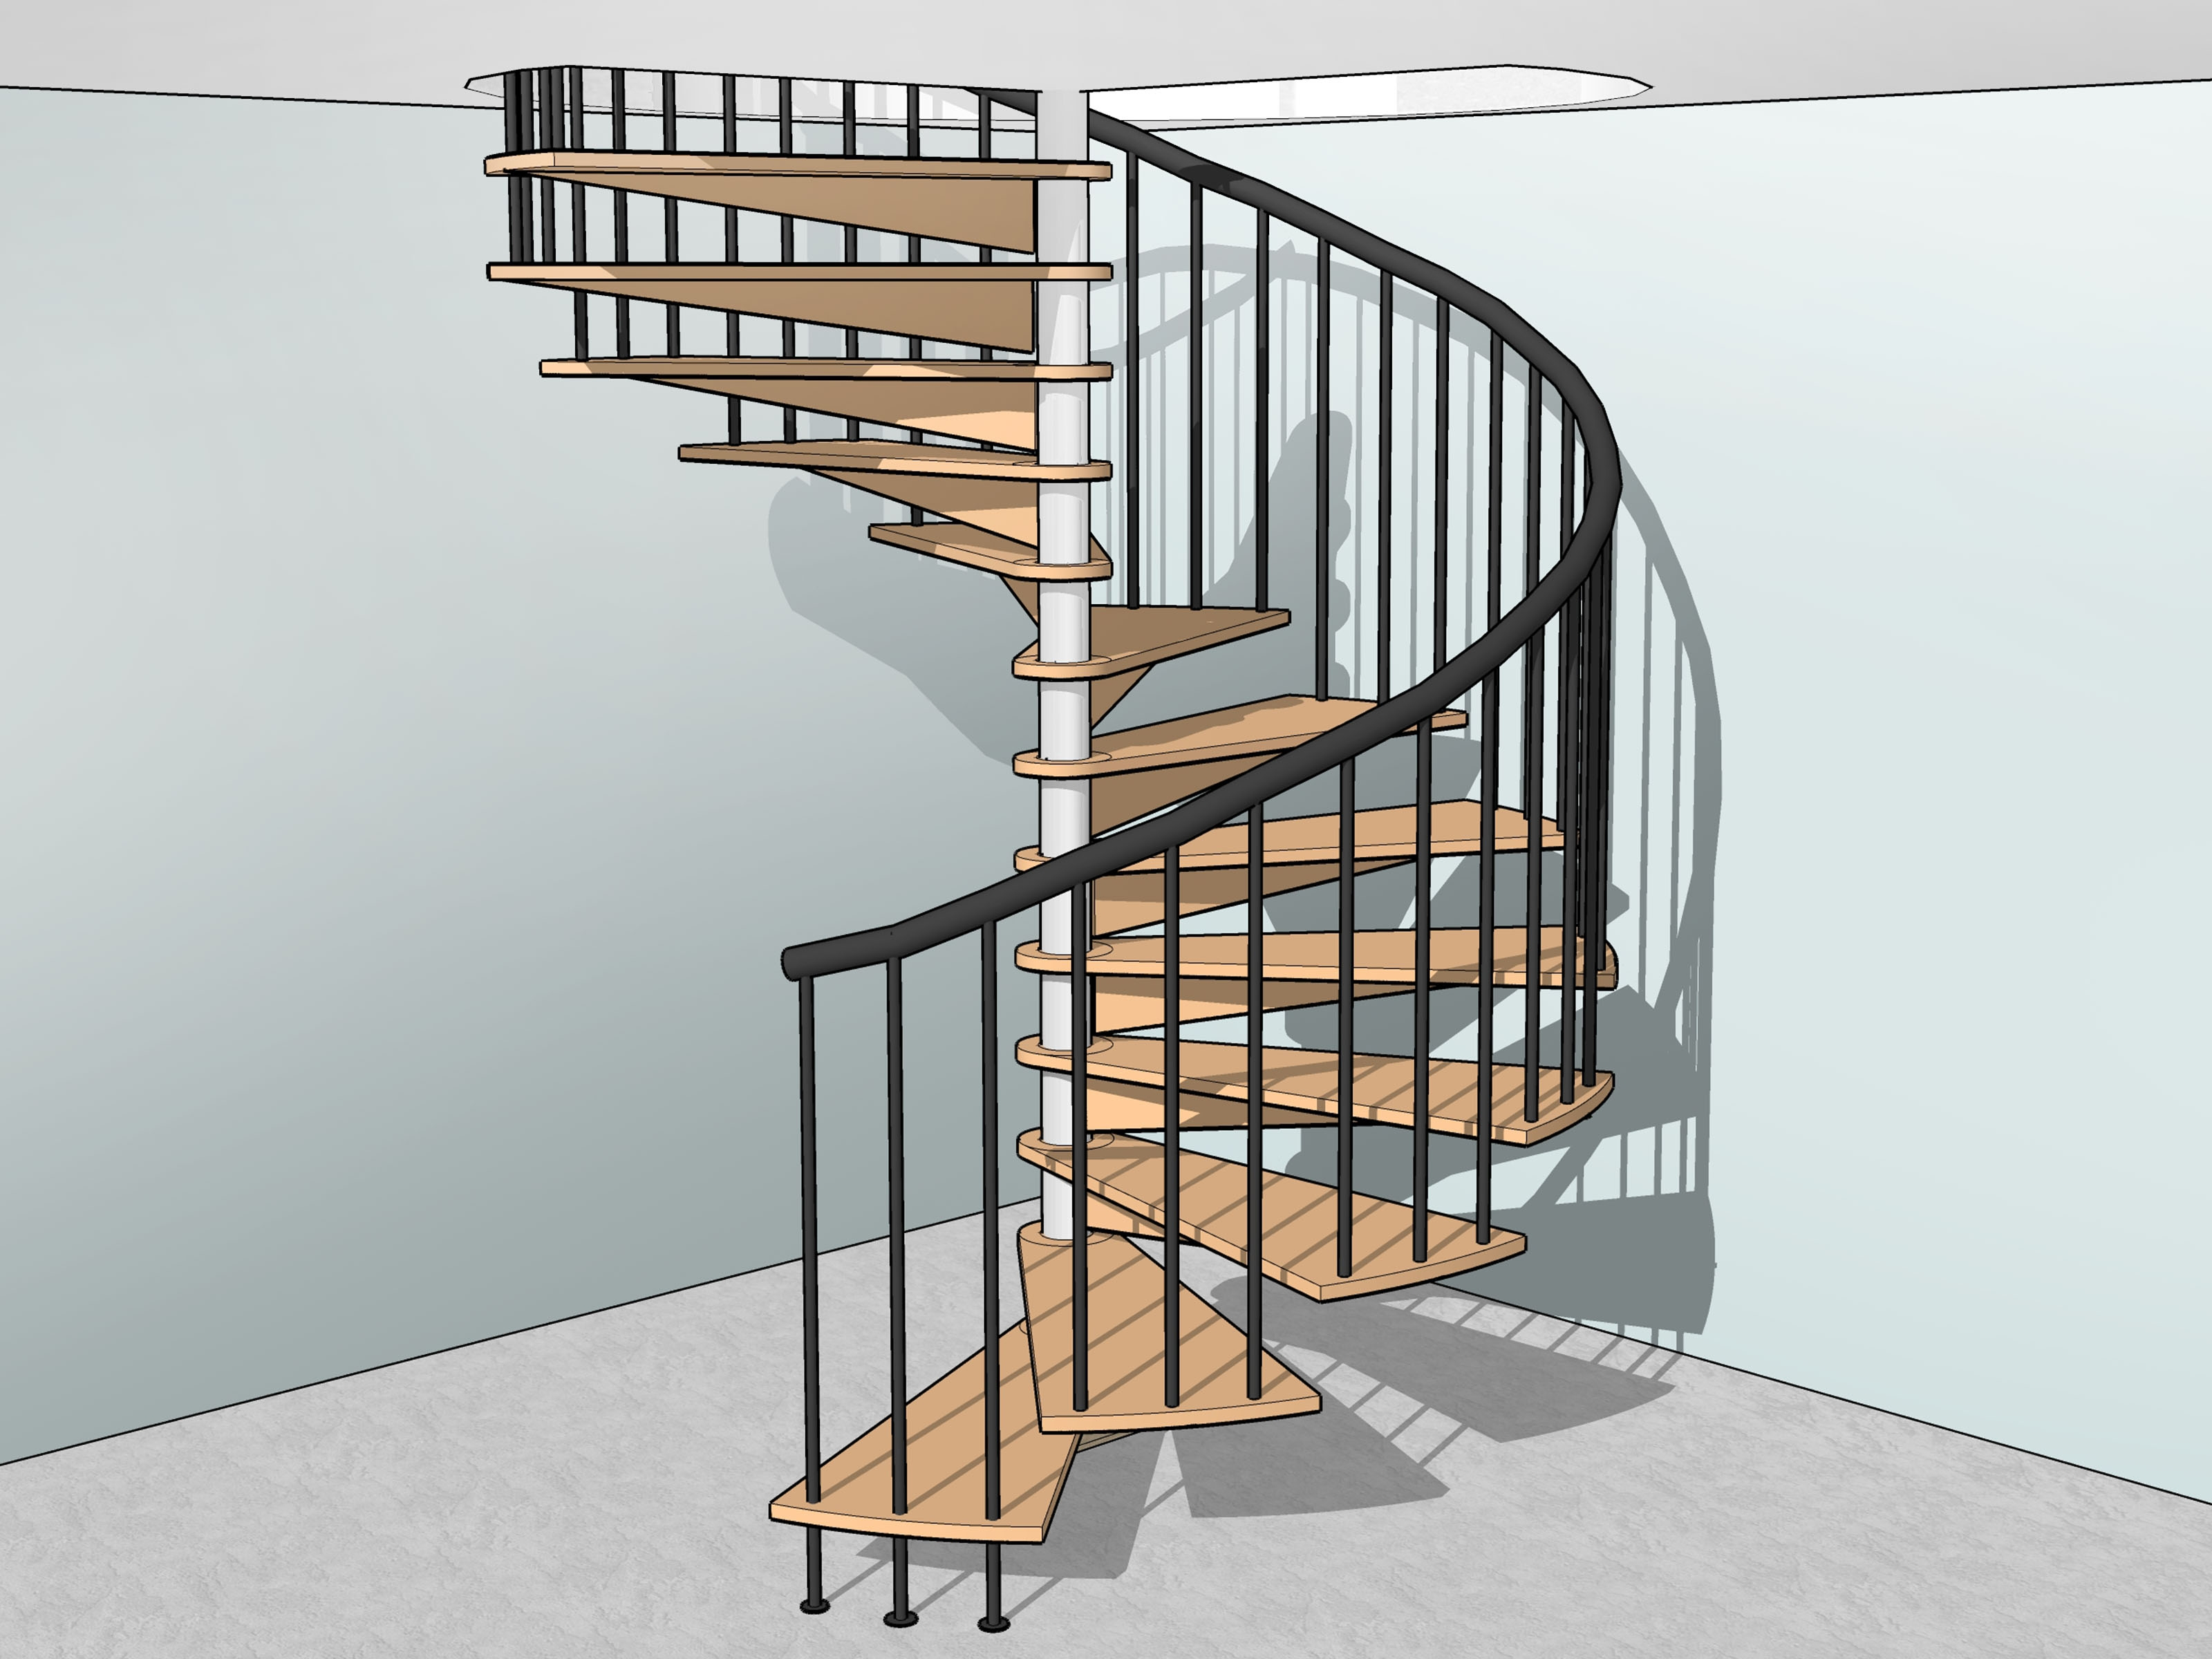 How To Build Spiral Stairs 15 Steps With Pictures Wikihow   5 Foot Spiral Staircase   Metal   Hayden Gray   Reroute Galvanized   Steel   Handrail